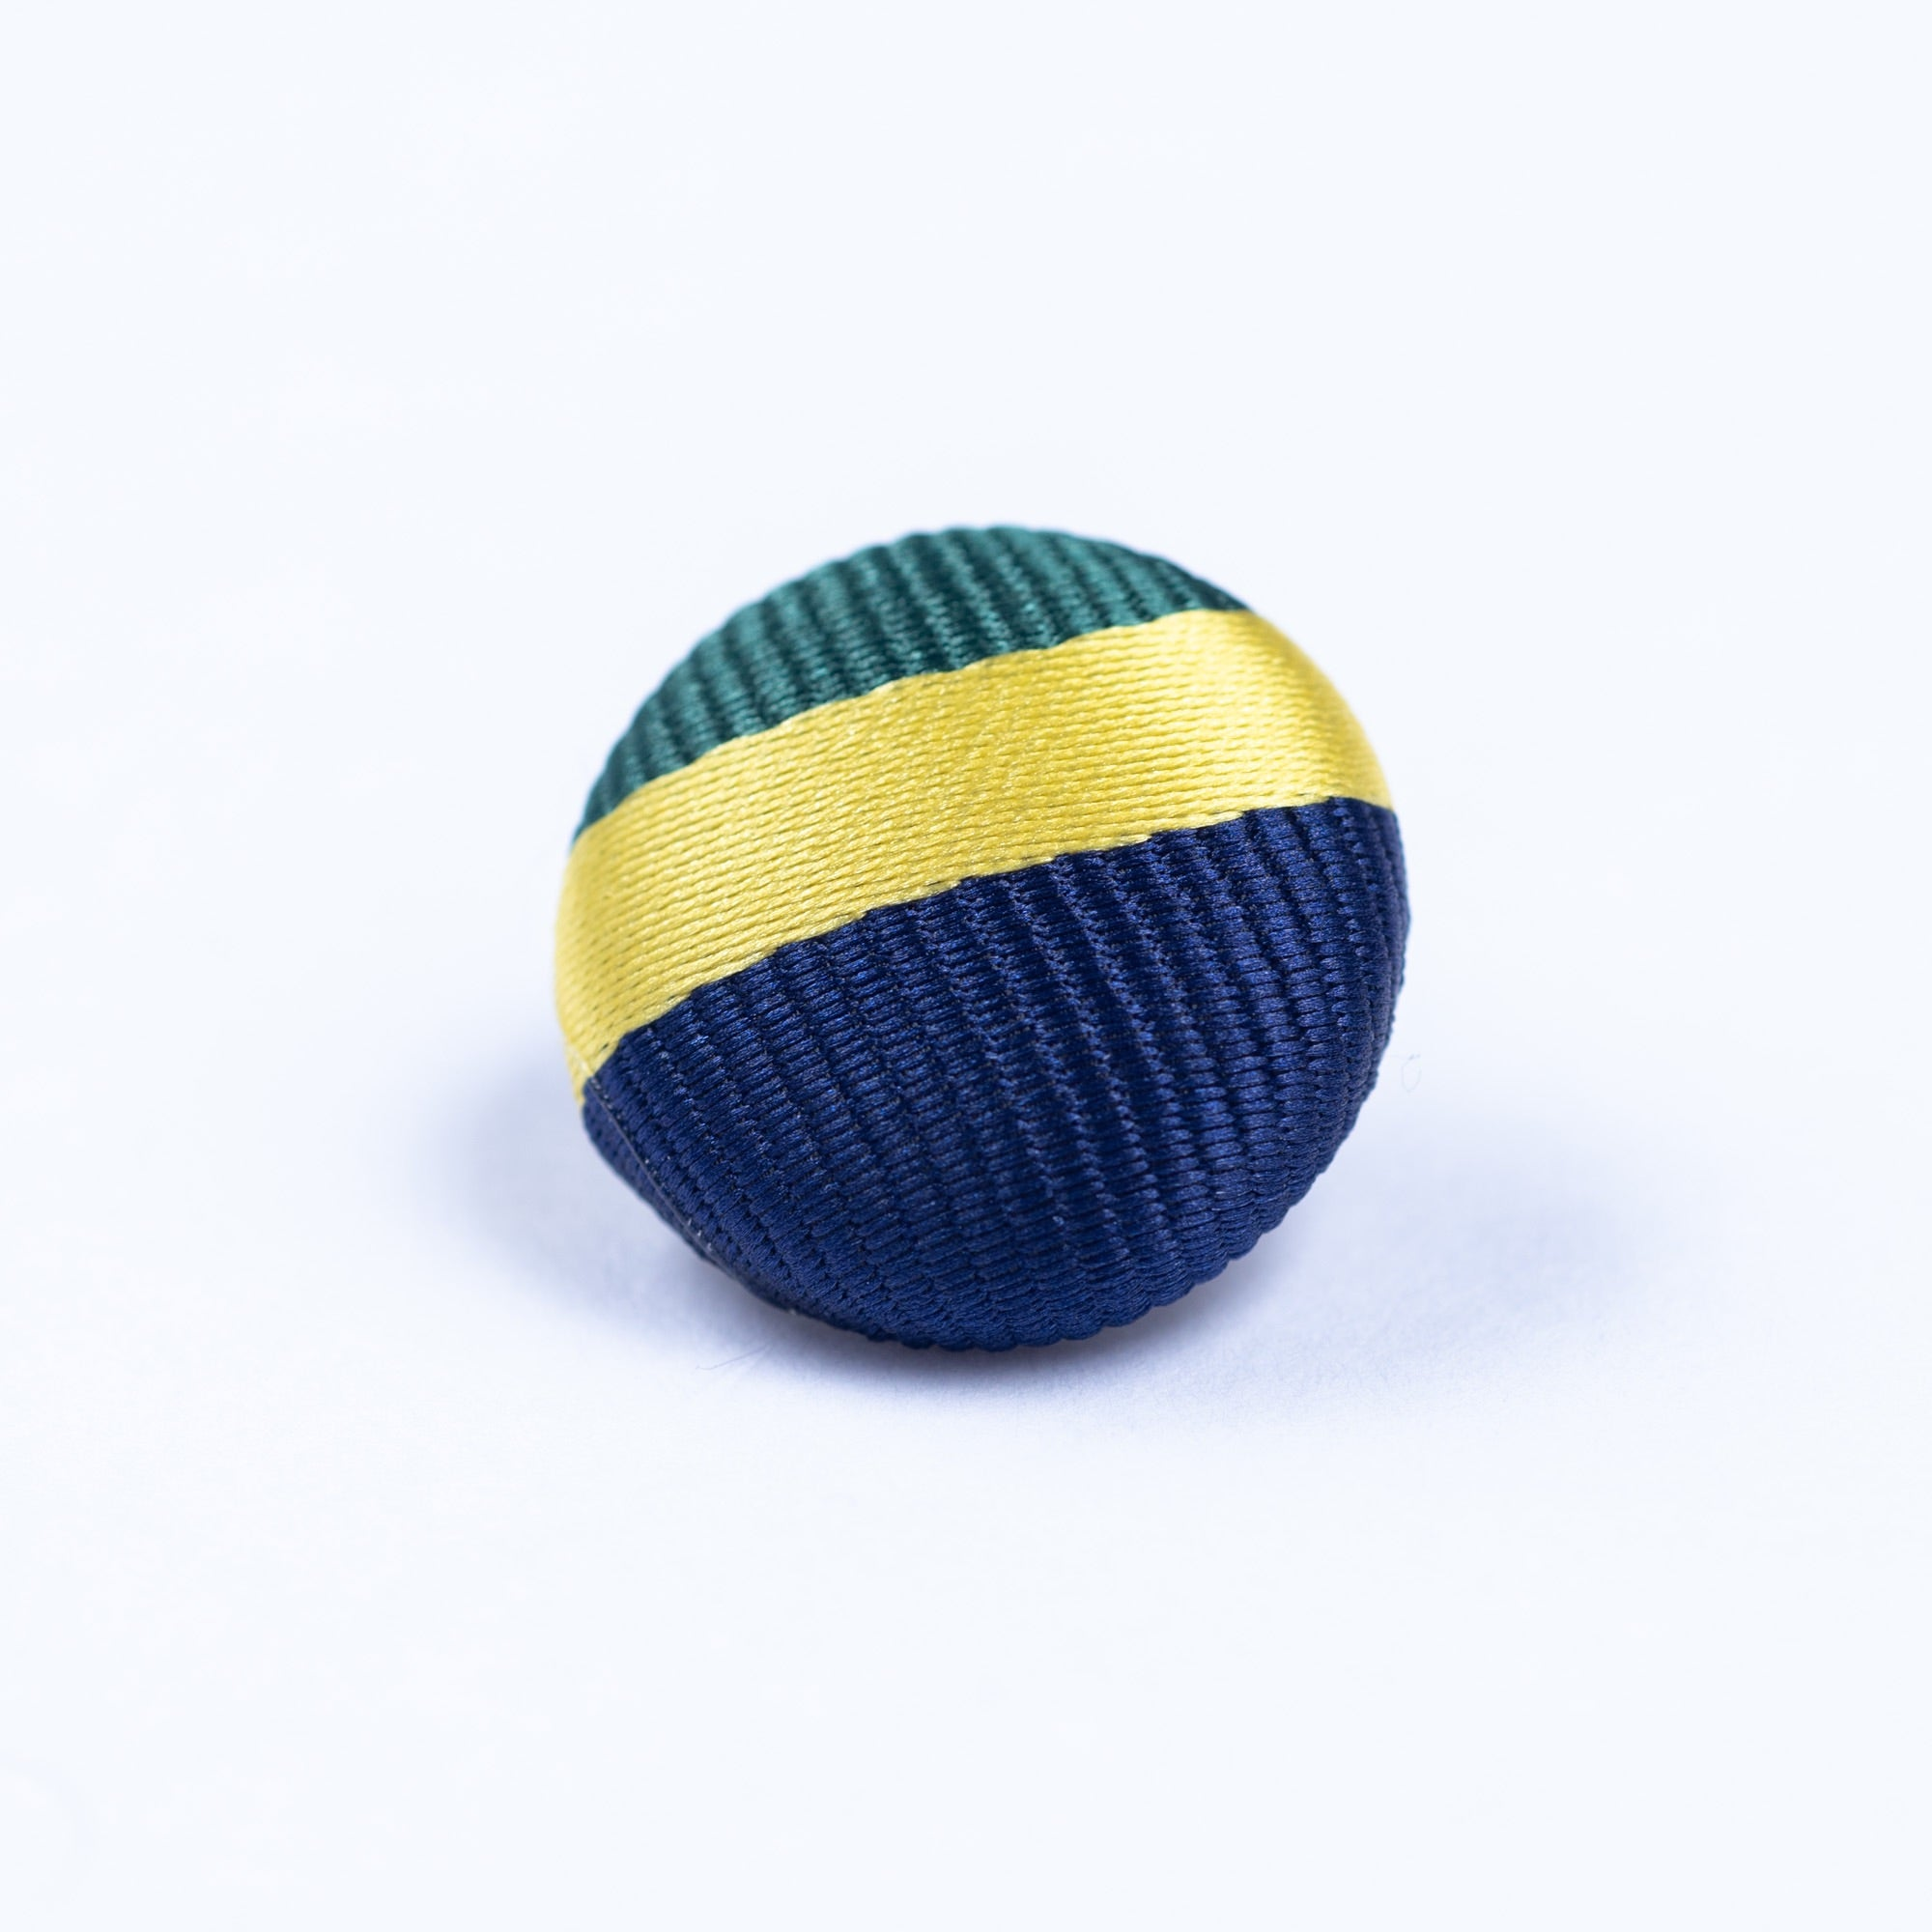 green, blue and yellow button lapel pin - Oxford Square